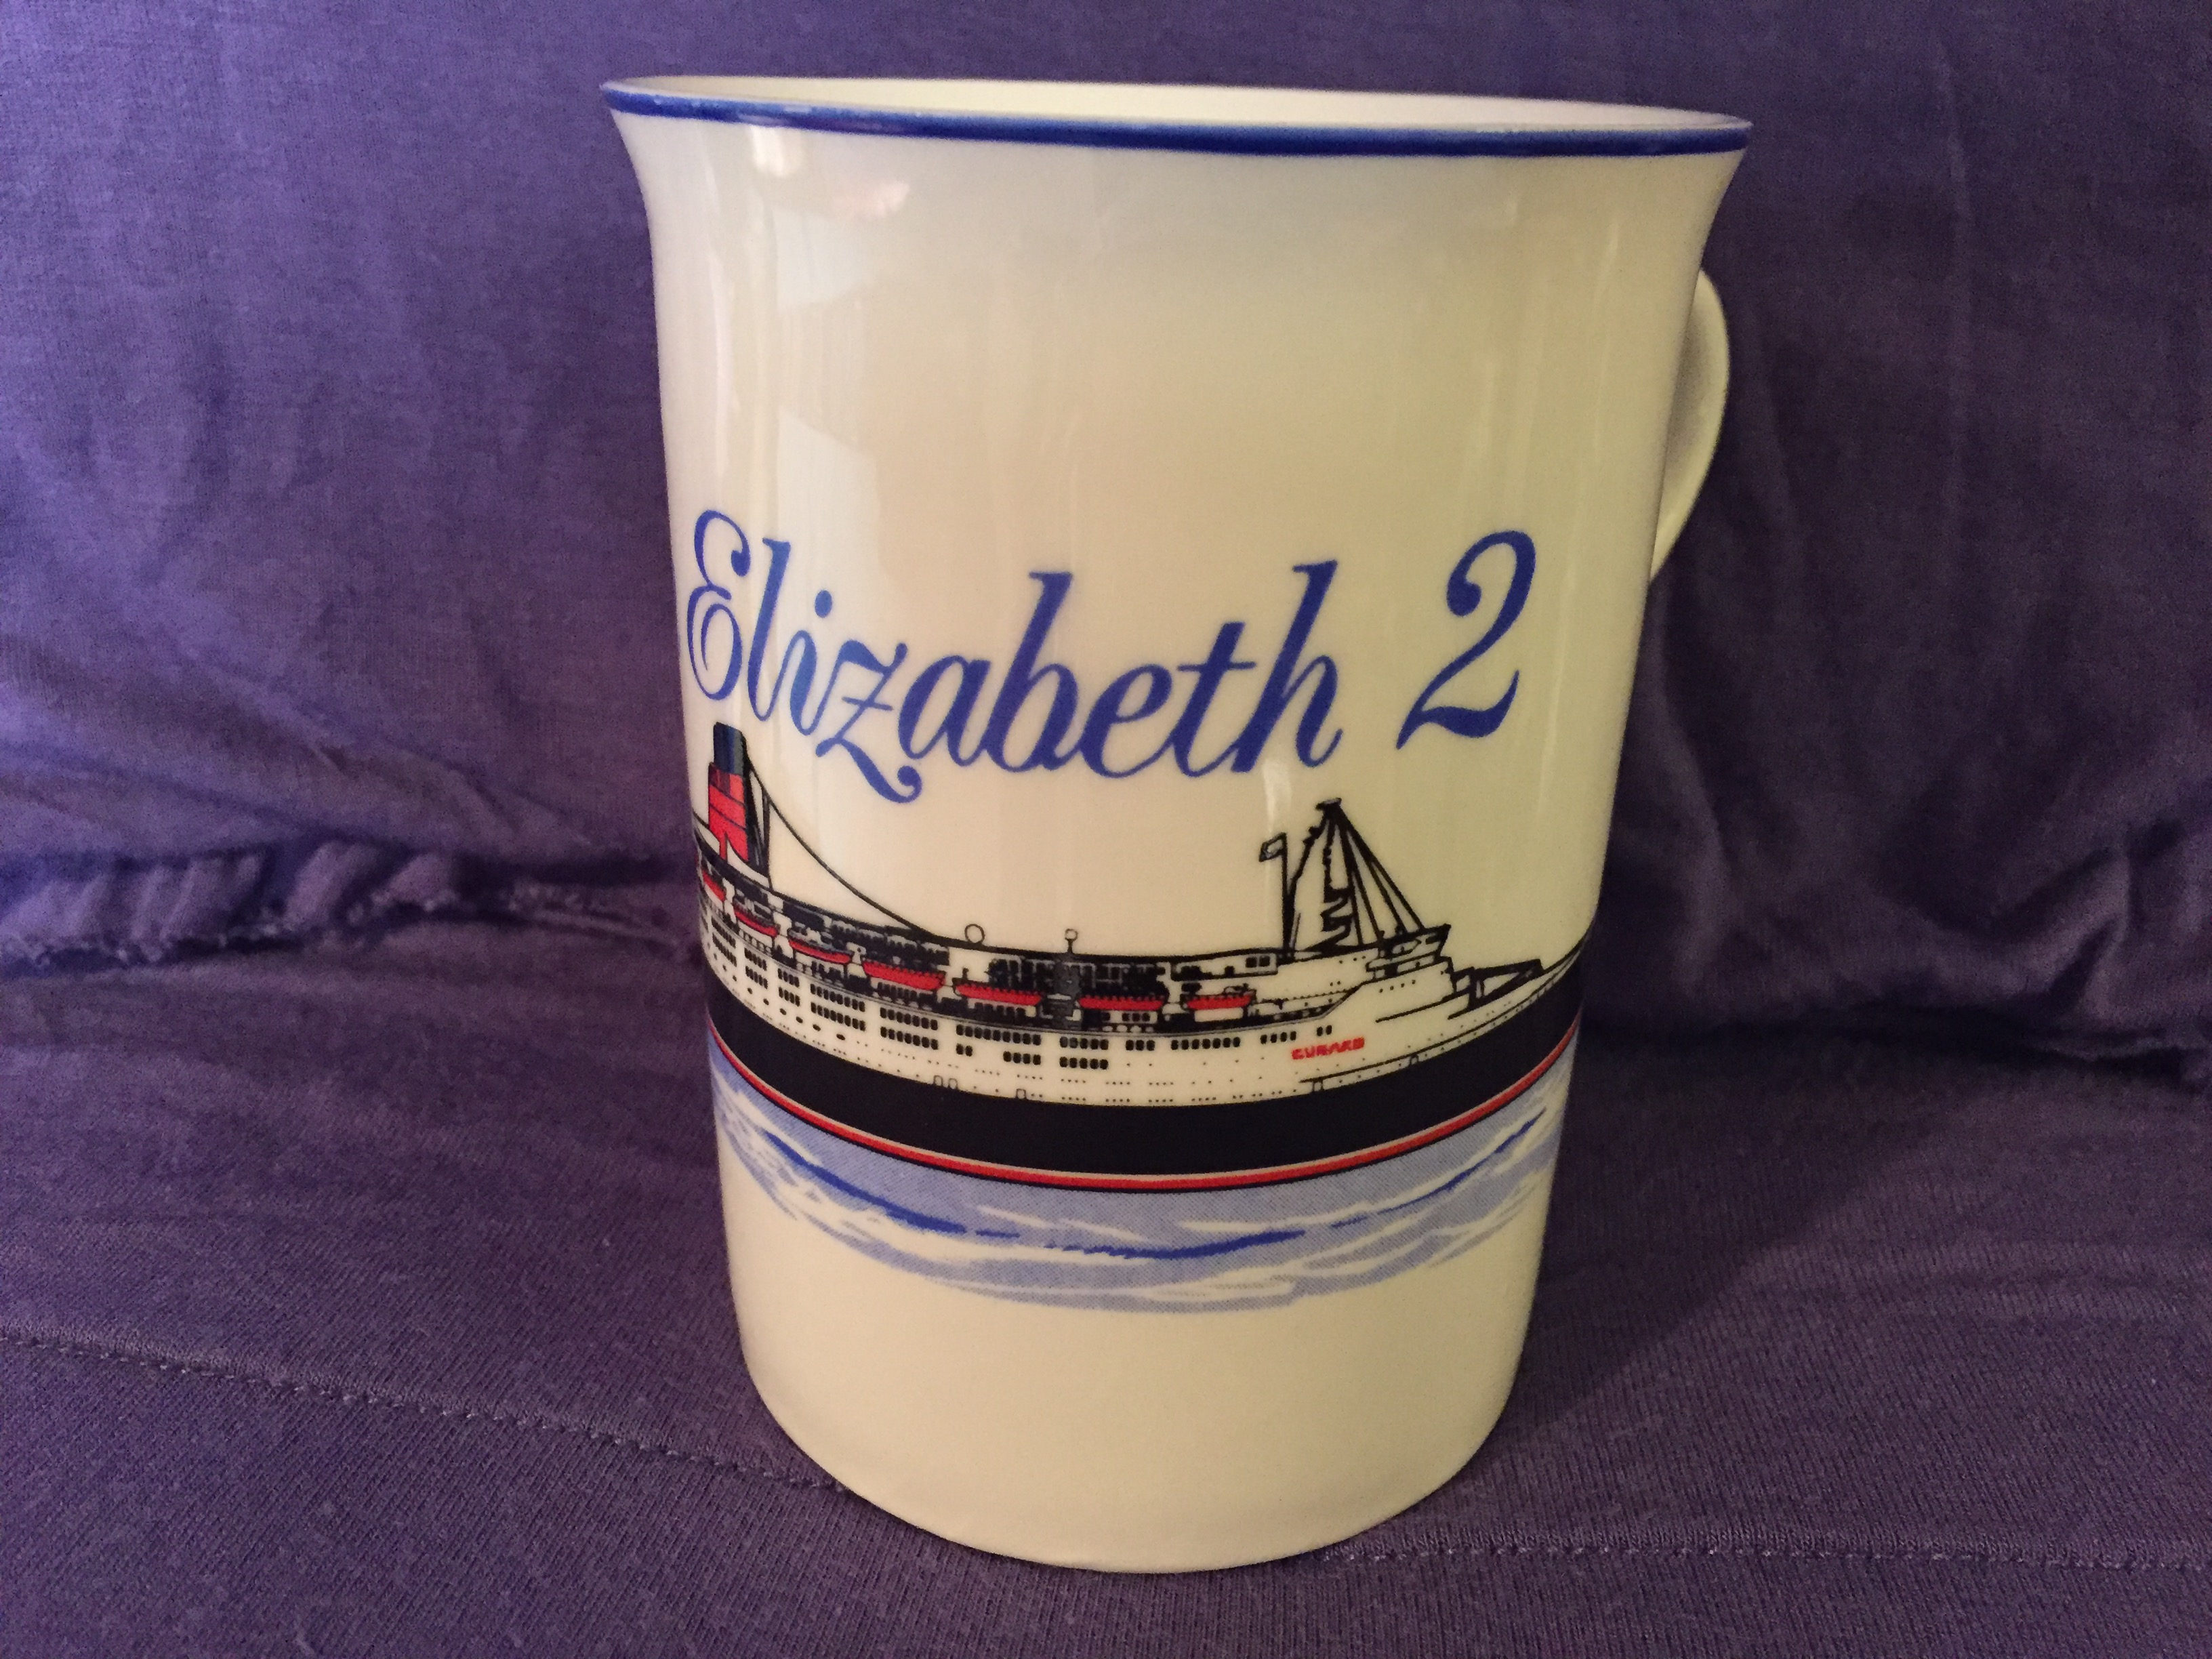 SOUVENIR MUG FROM THE VESSEL THE QE2